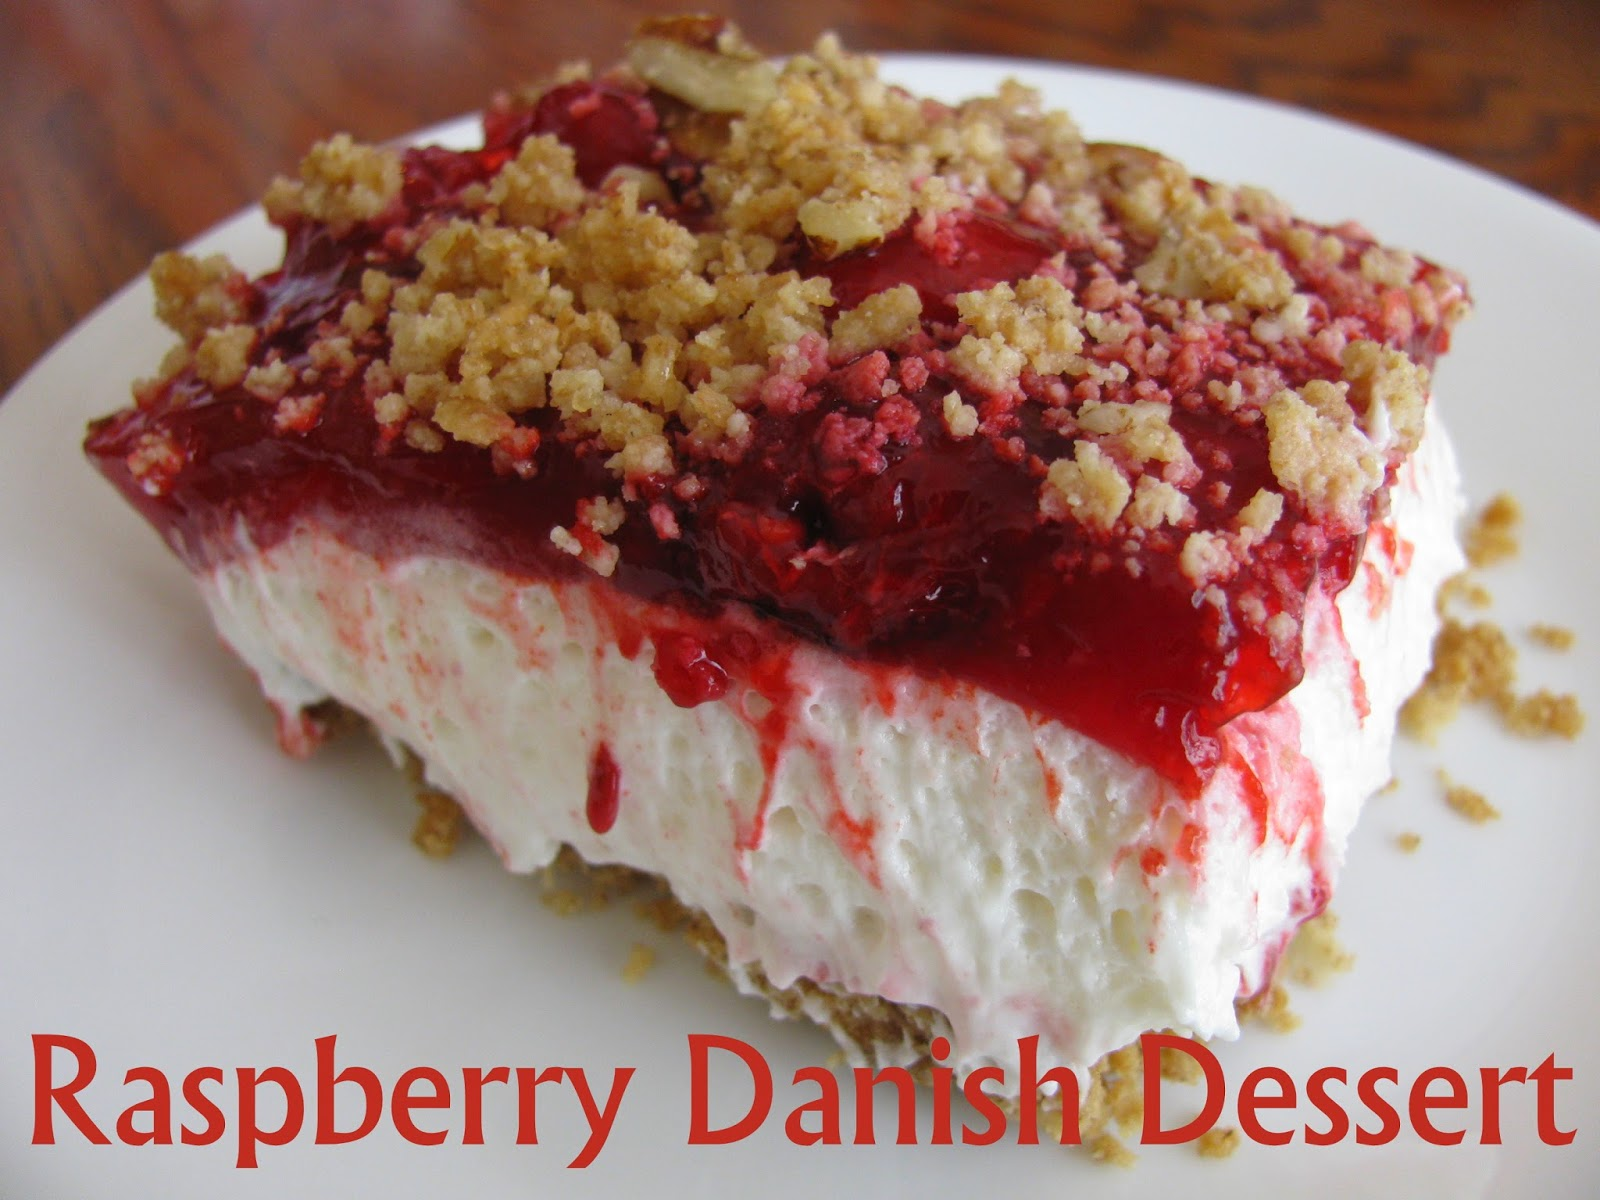 Raspberry danish dessert family heritage recipes forumfinder Images